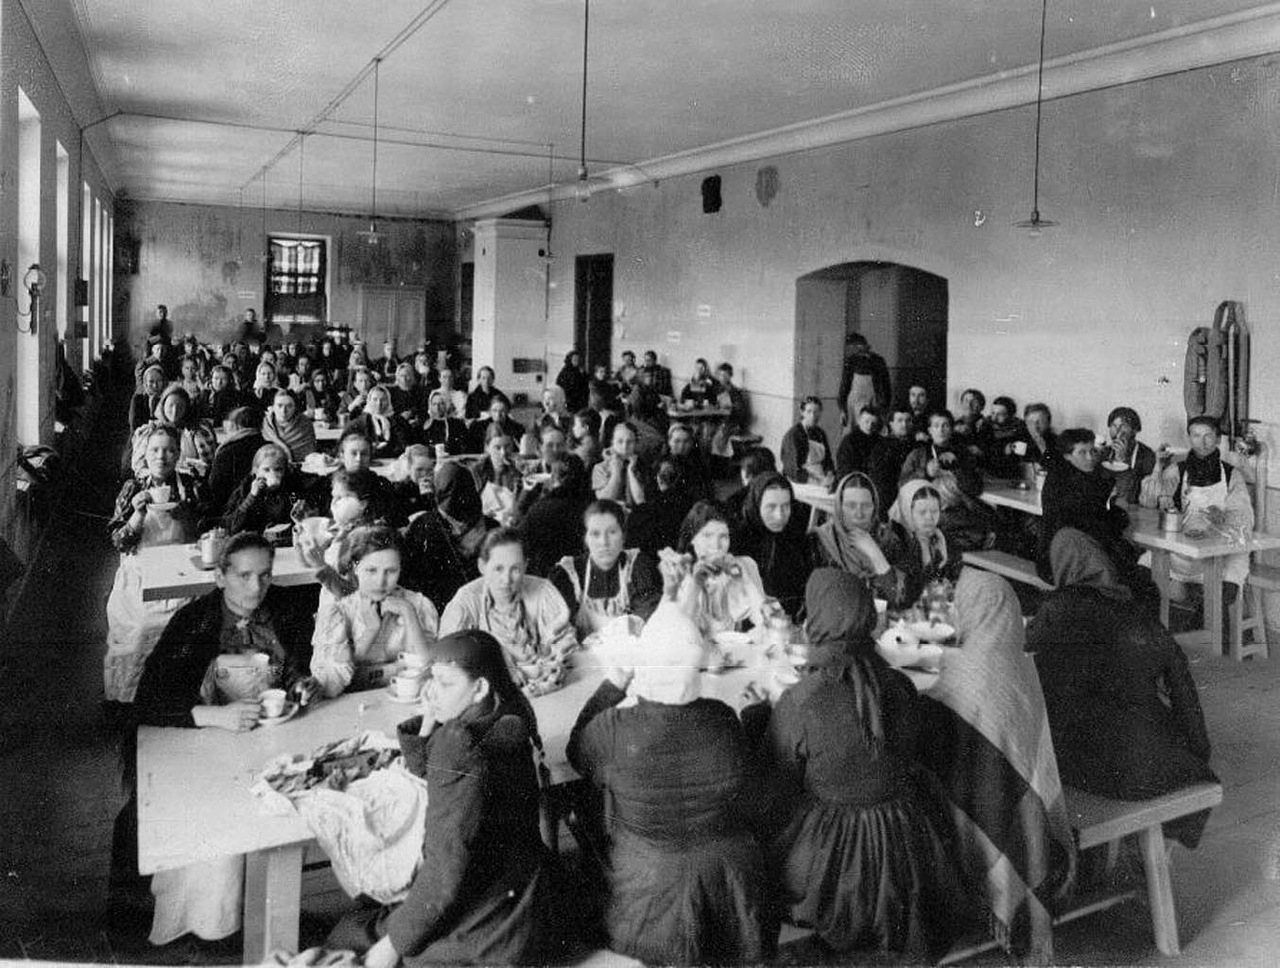 Workers waiting for lunch at the dining hall at State Wine Warehouse No. 1. Keller and K° employed about 380 people at its peak.